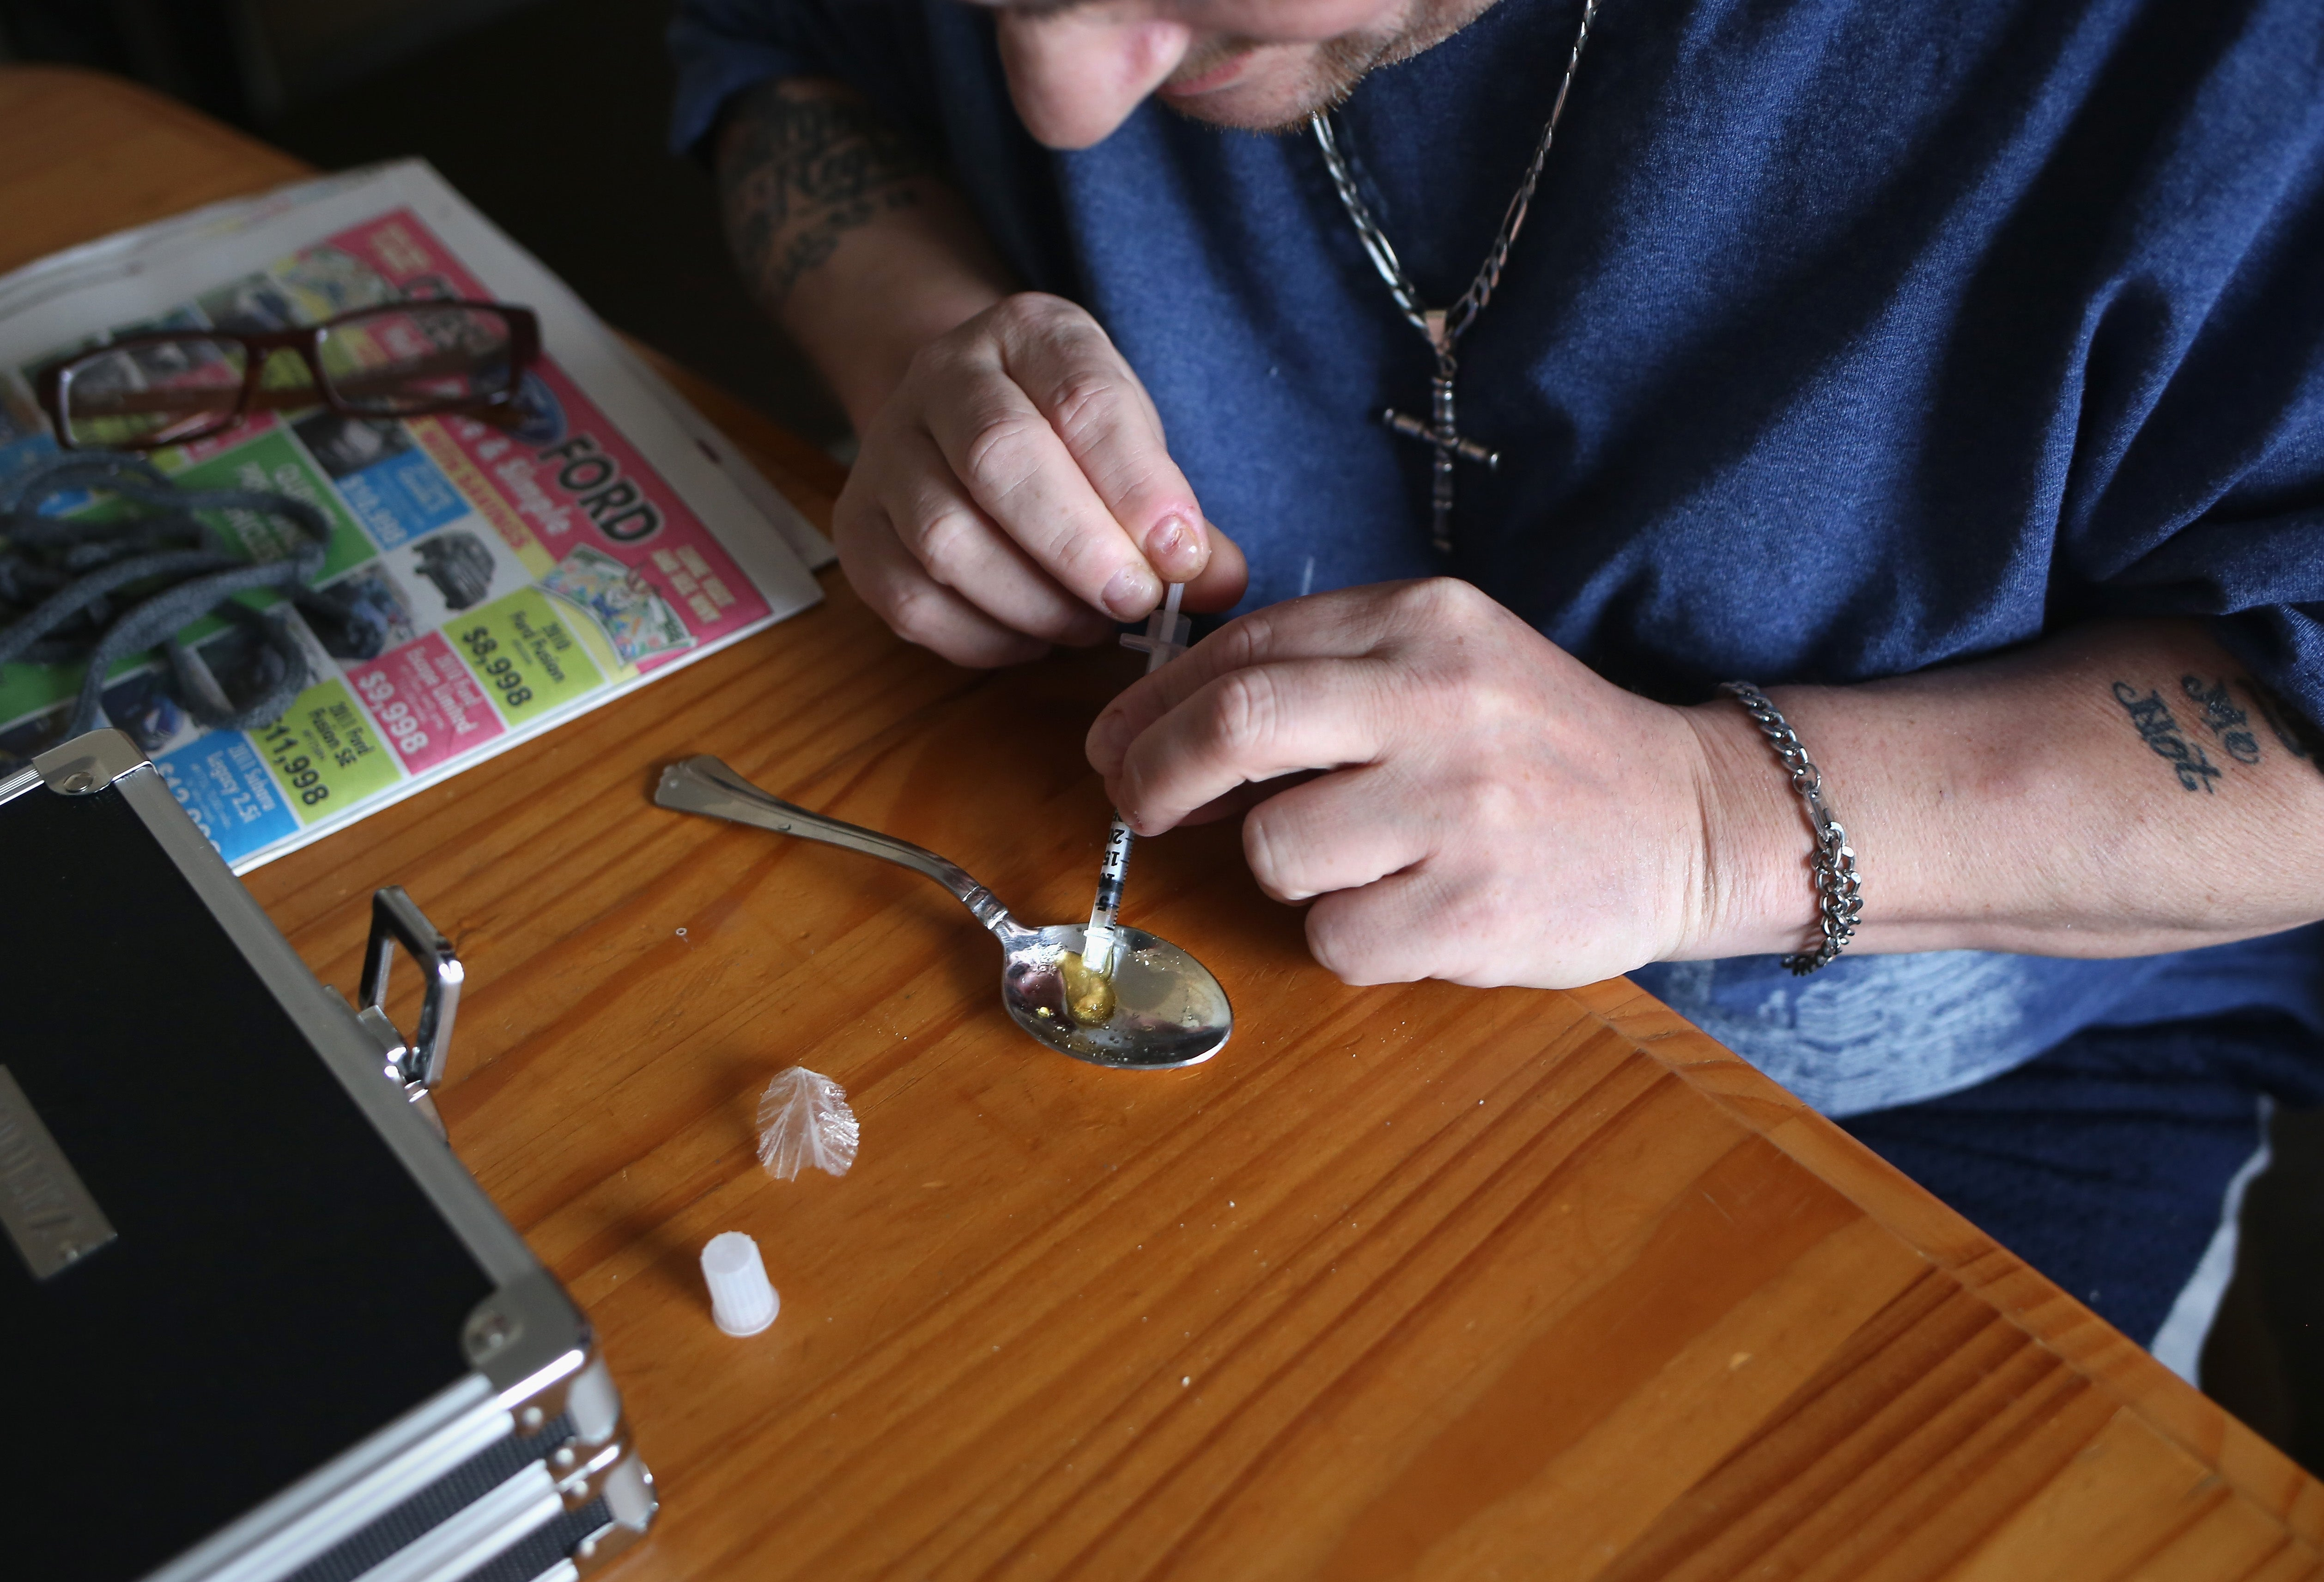 A man in New London, Conn., preparing to inject heroin last month. Supporters and opponents of marijuana legalization have cited the region's opioid crisis as part of their arguments.